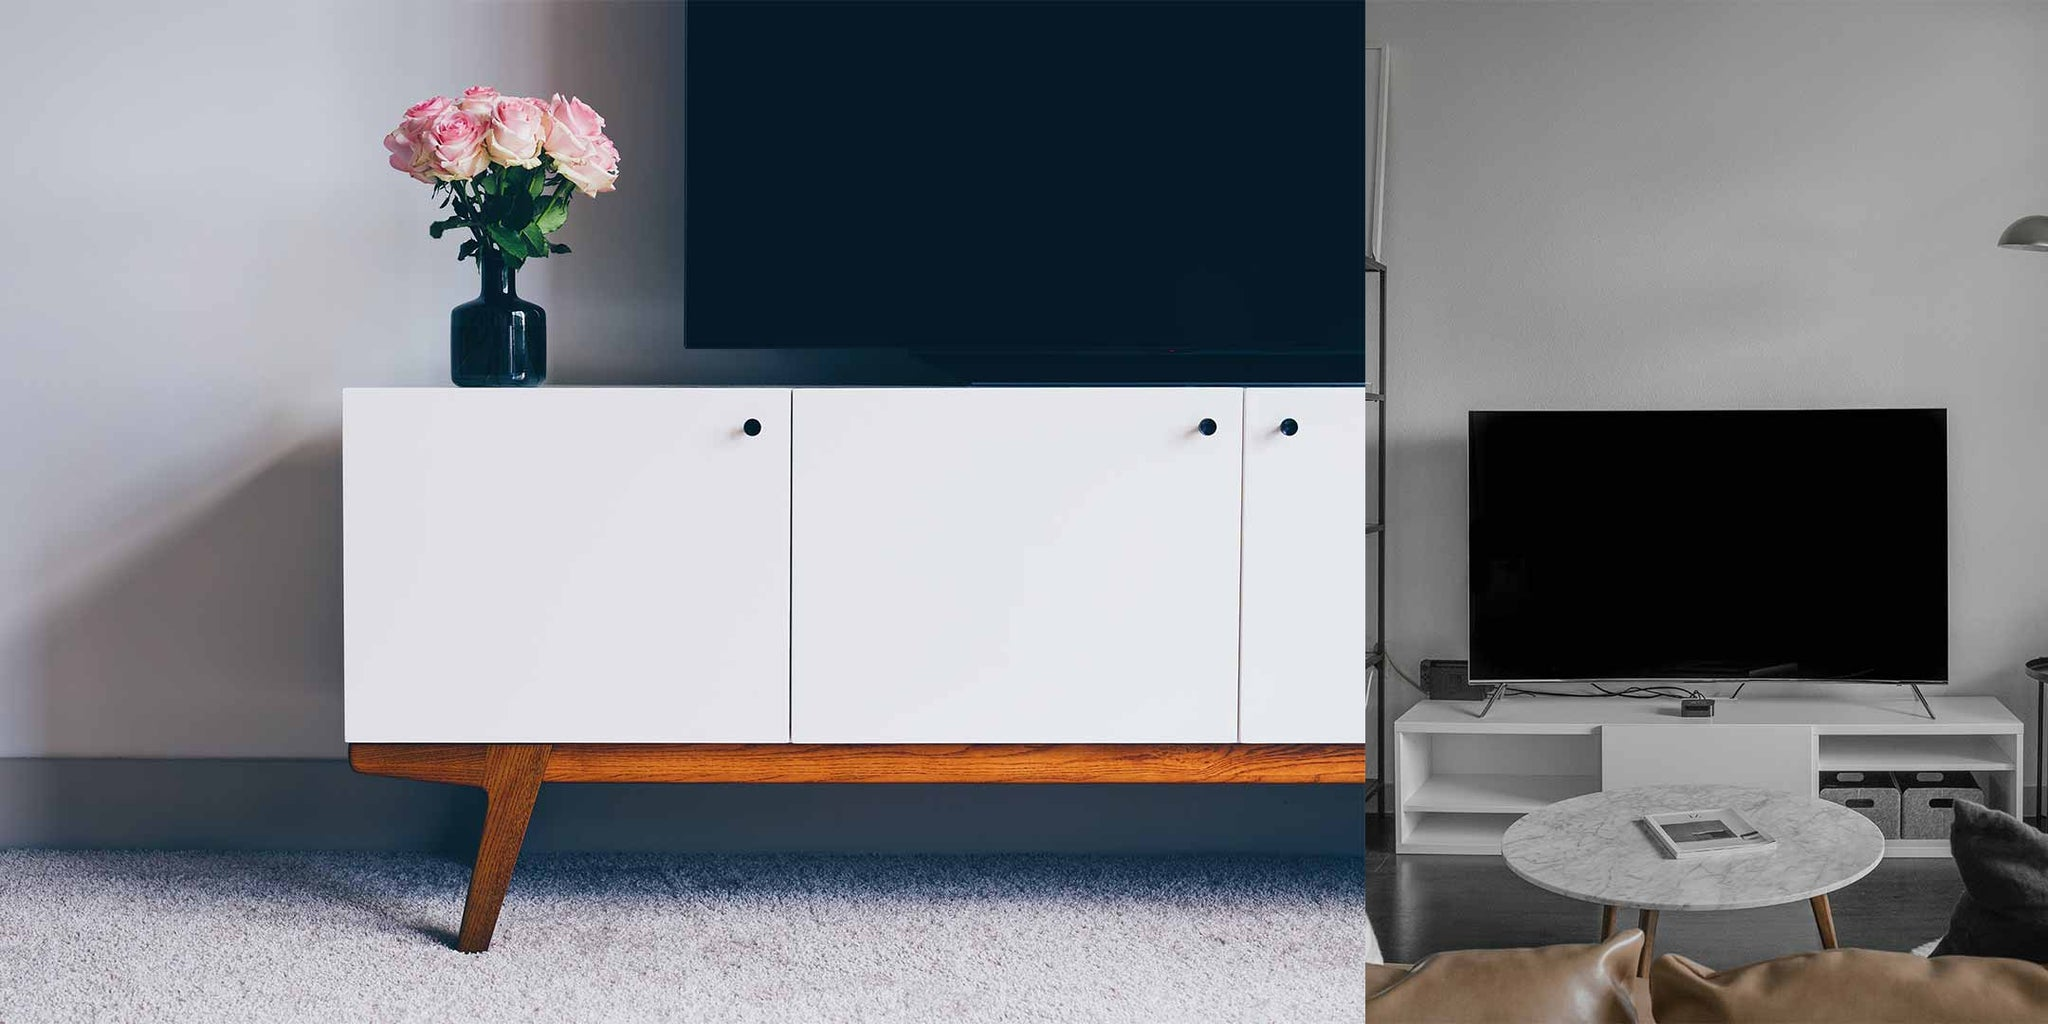 Perfect for Binge-Watching The TV Console